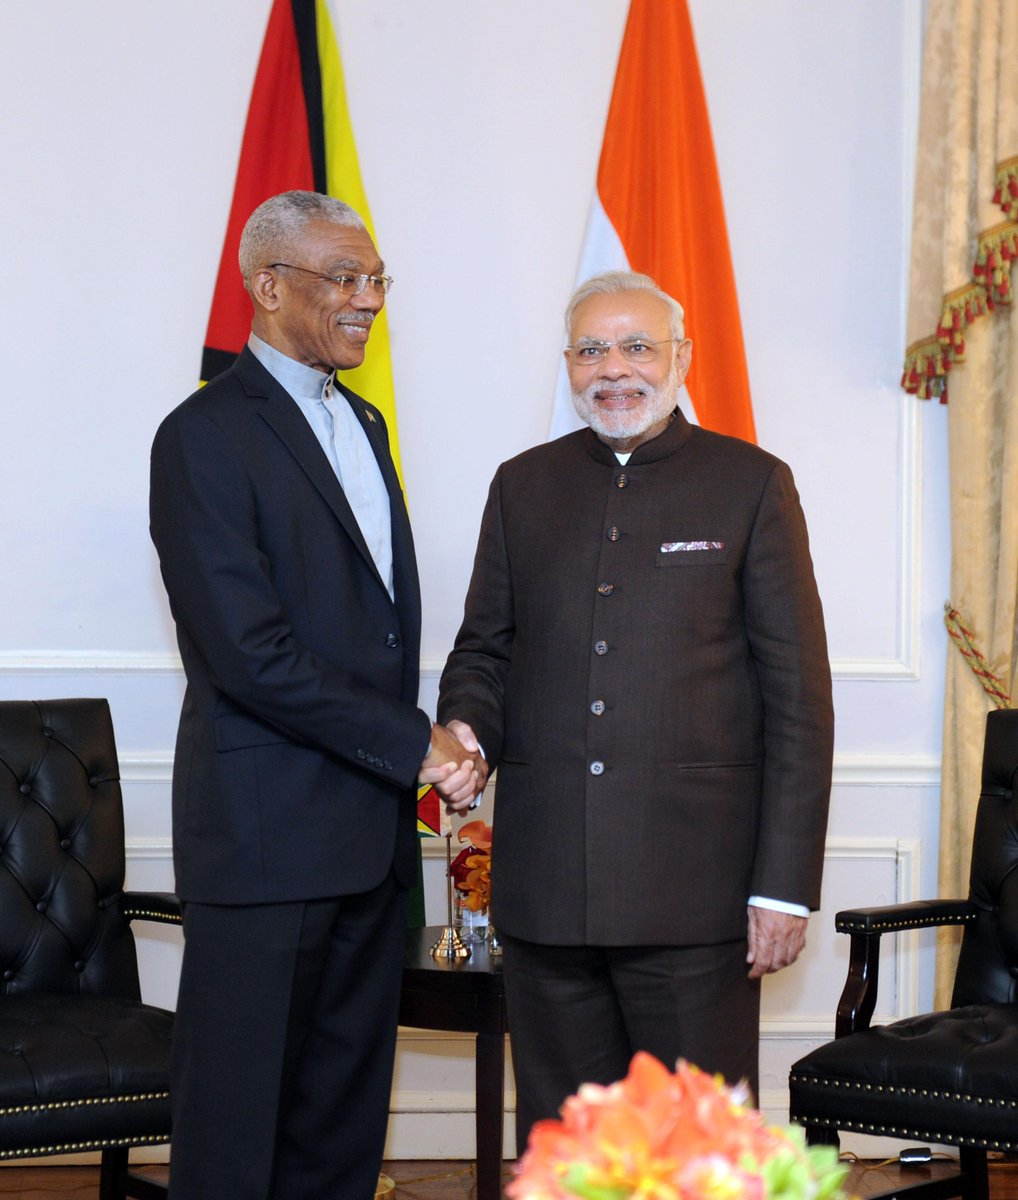 Discussed India-Guyana ties with President David Granger & invited him to visit India.